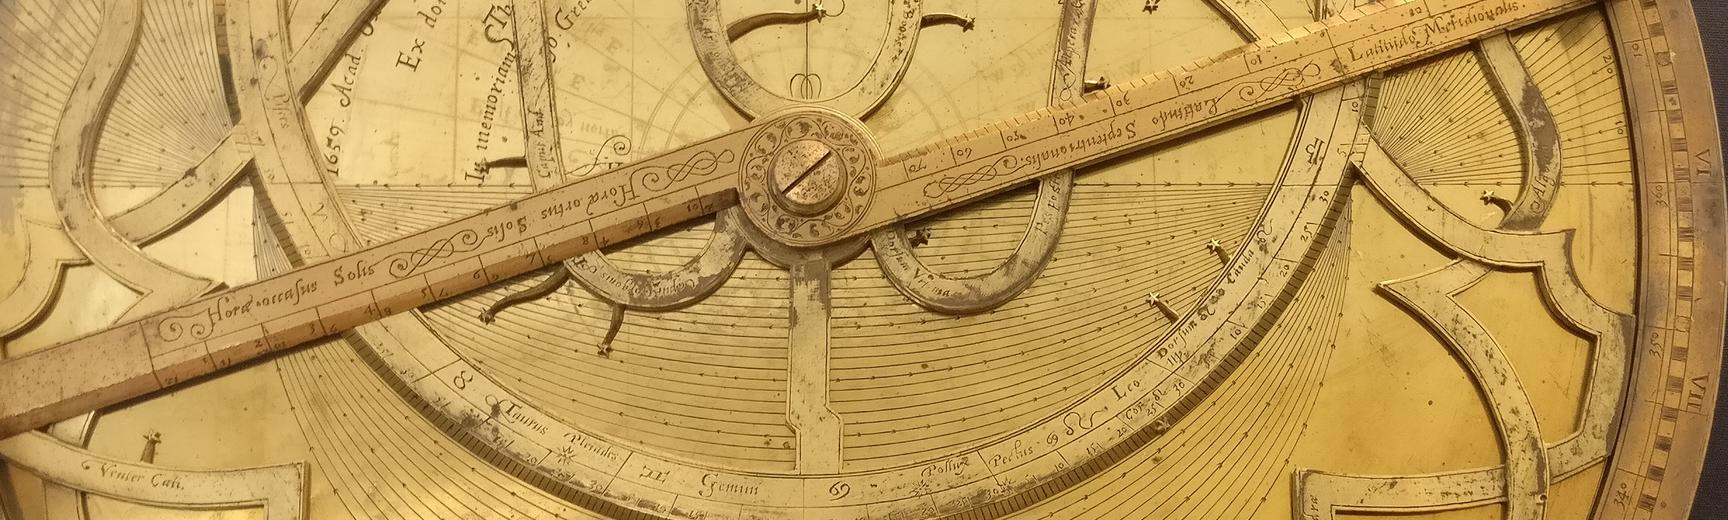 Close-up view of an astrolabe